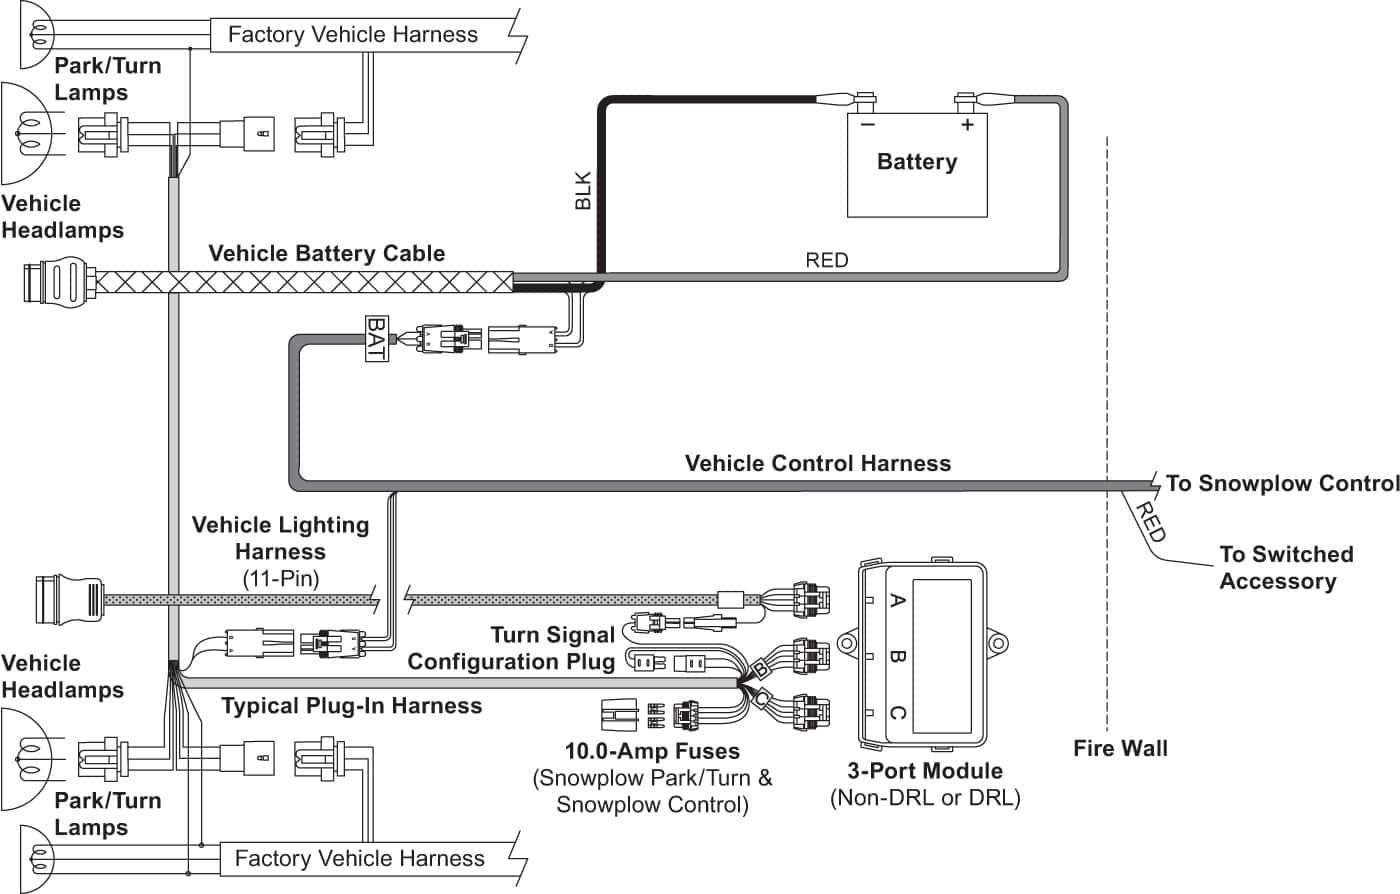 MC Series Vehicle-Side Harness Diagram (3-Port, 2-Plug)